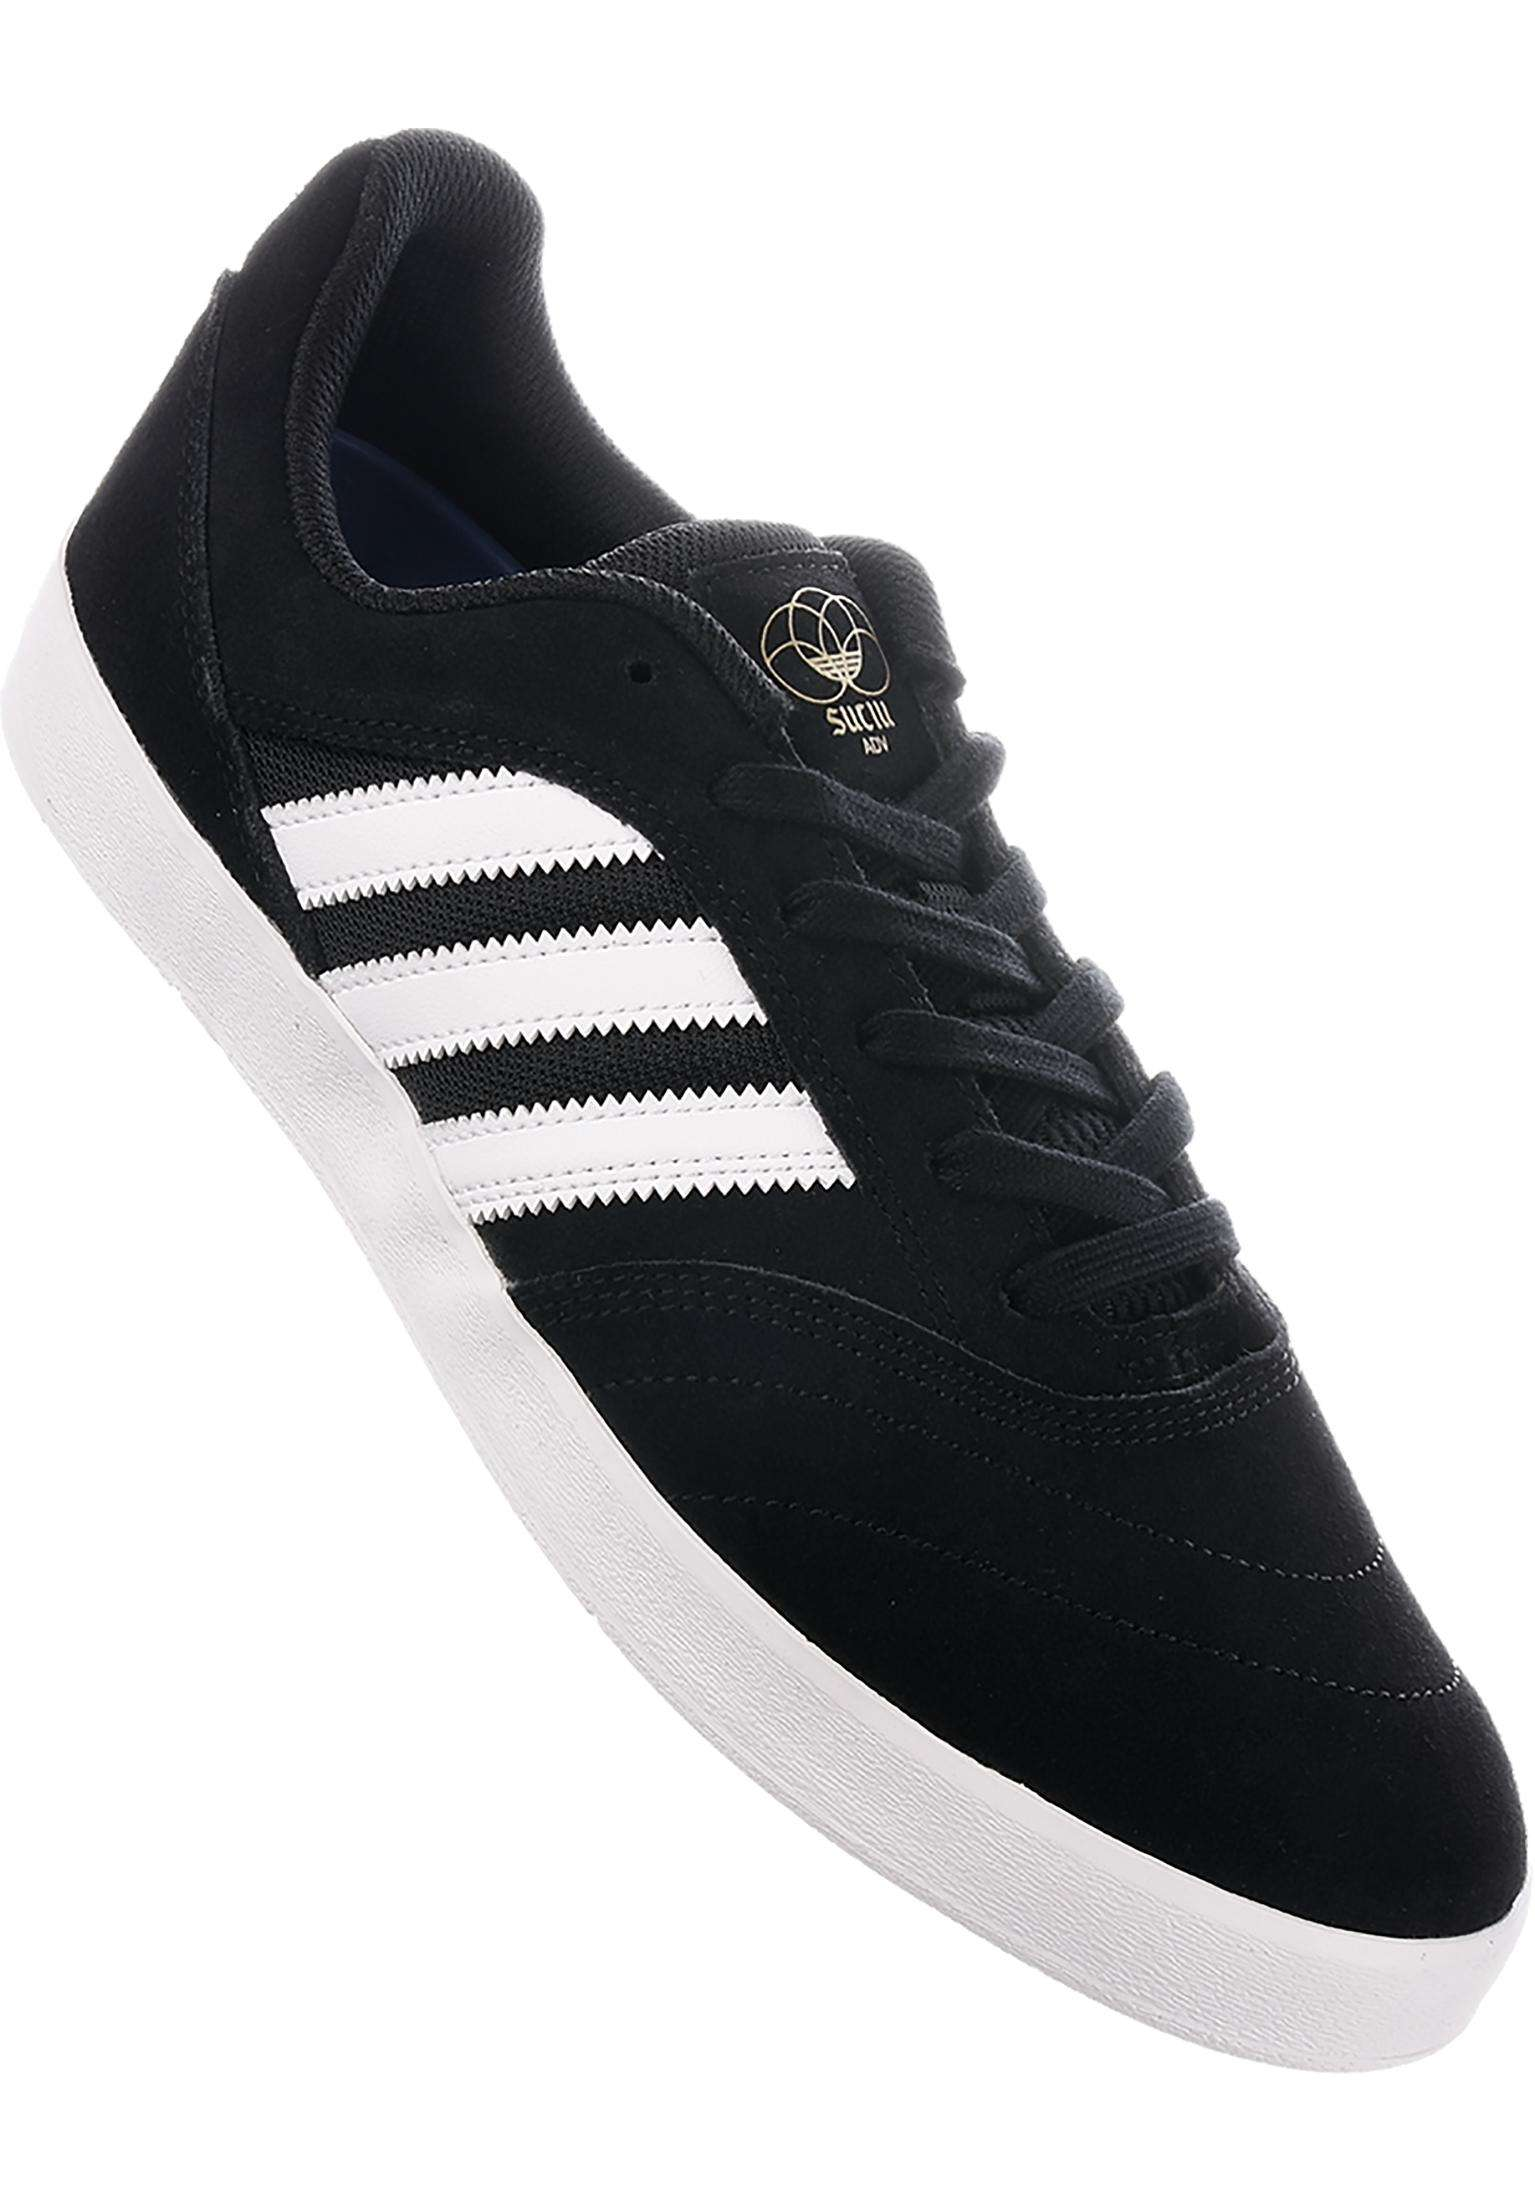 4ef5328566 Suciu ADV adidas-skateboarding All Shoes in coreblack-white-gold for Men